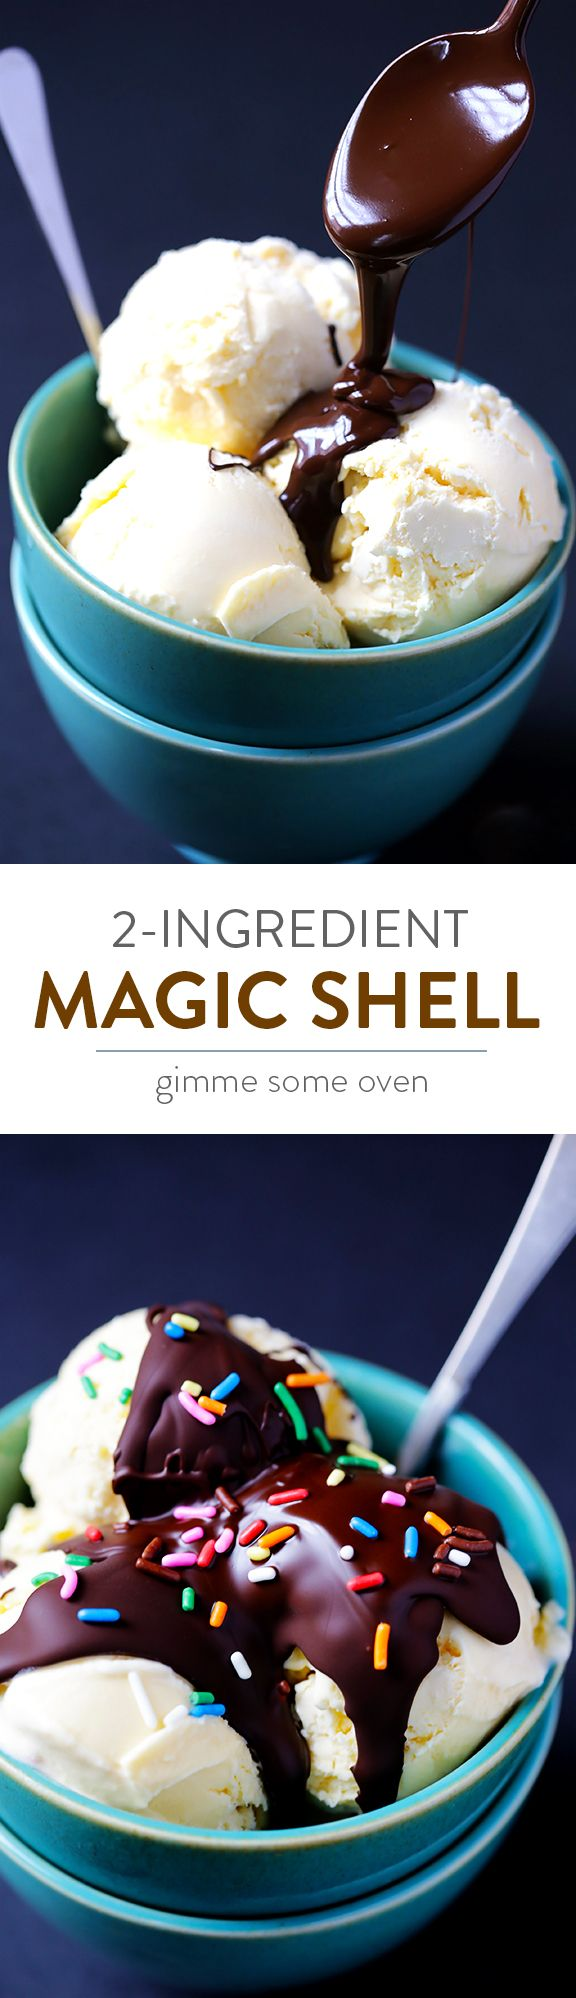 All you need are 2 easy ingredients to make the crunchy chocolate magic shell topping we all love! | gimmesomeoven.com